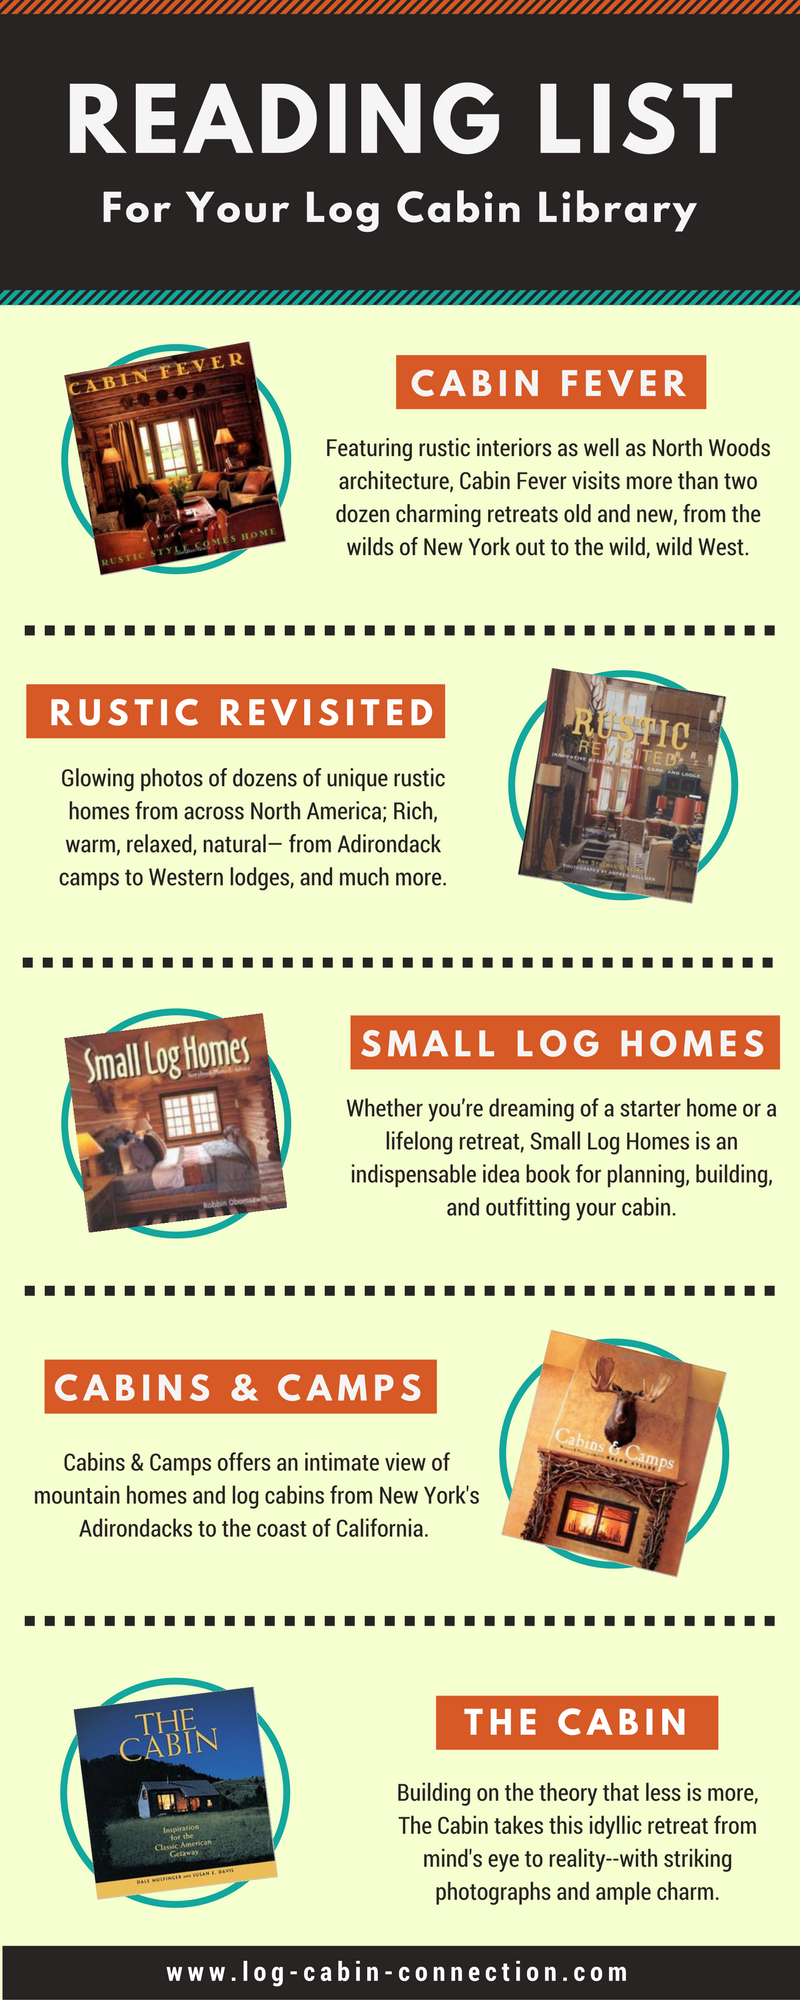 A good selection of log home books to get your cabin library started.